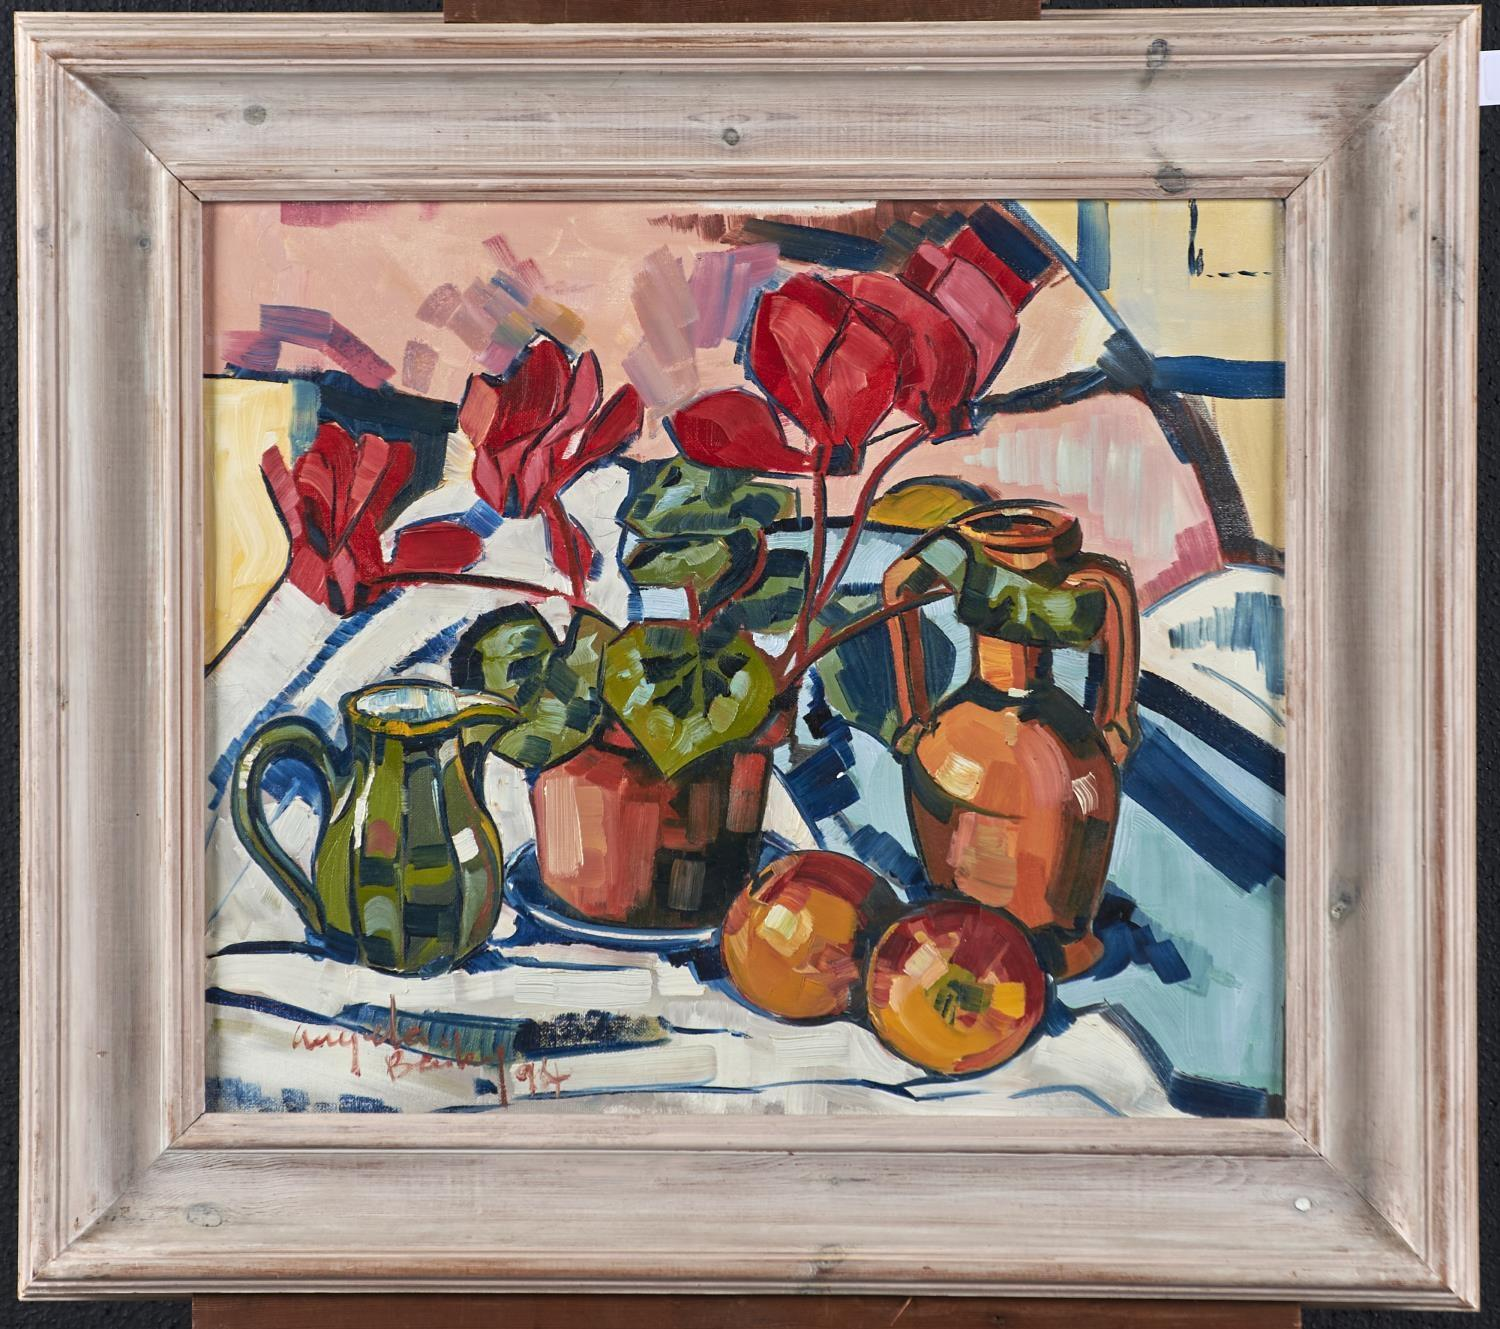 ANGELA BAILEY, 20TH/21ST CENTURY - STILL LIFE WITH CYCLAMEN AND FRUIT, SIGNED AND DATED '94, - Image 2 of 3